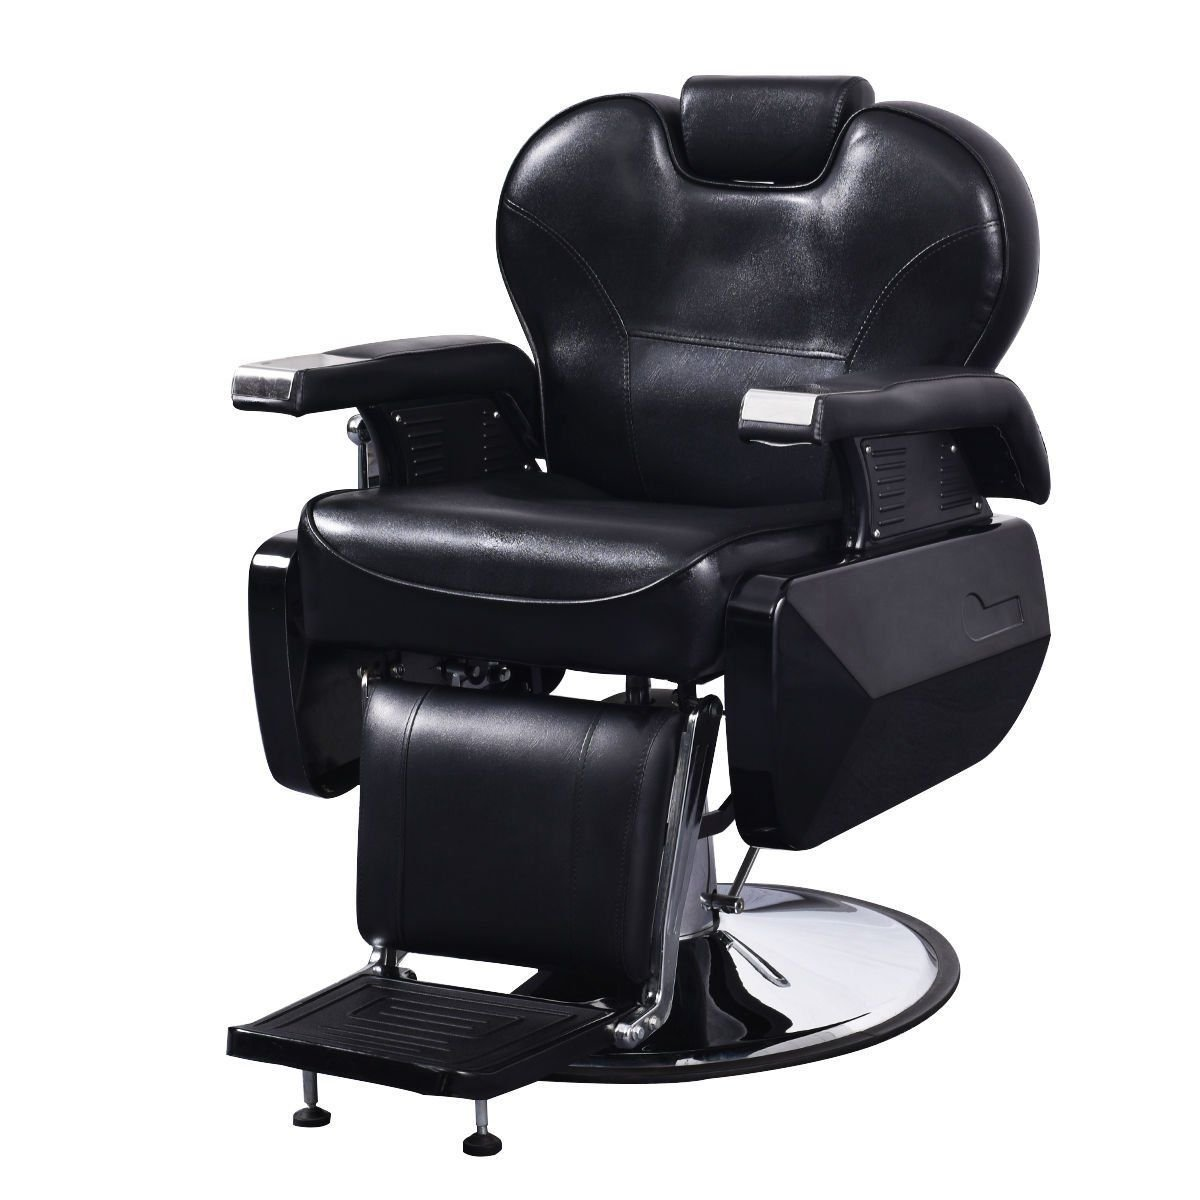 Pupzo Barber Chair All Purpose Hydraulic Recline Salon Beauty Spa Shampoo Hair Styling kind3